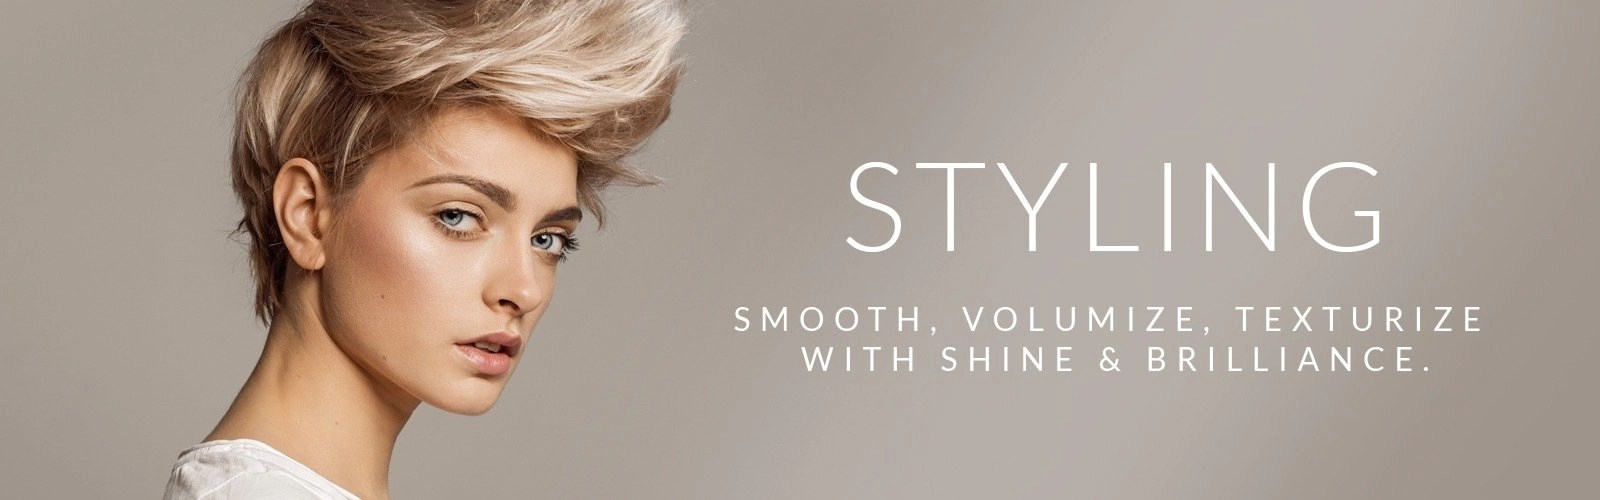 MainSection Header Styling